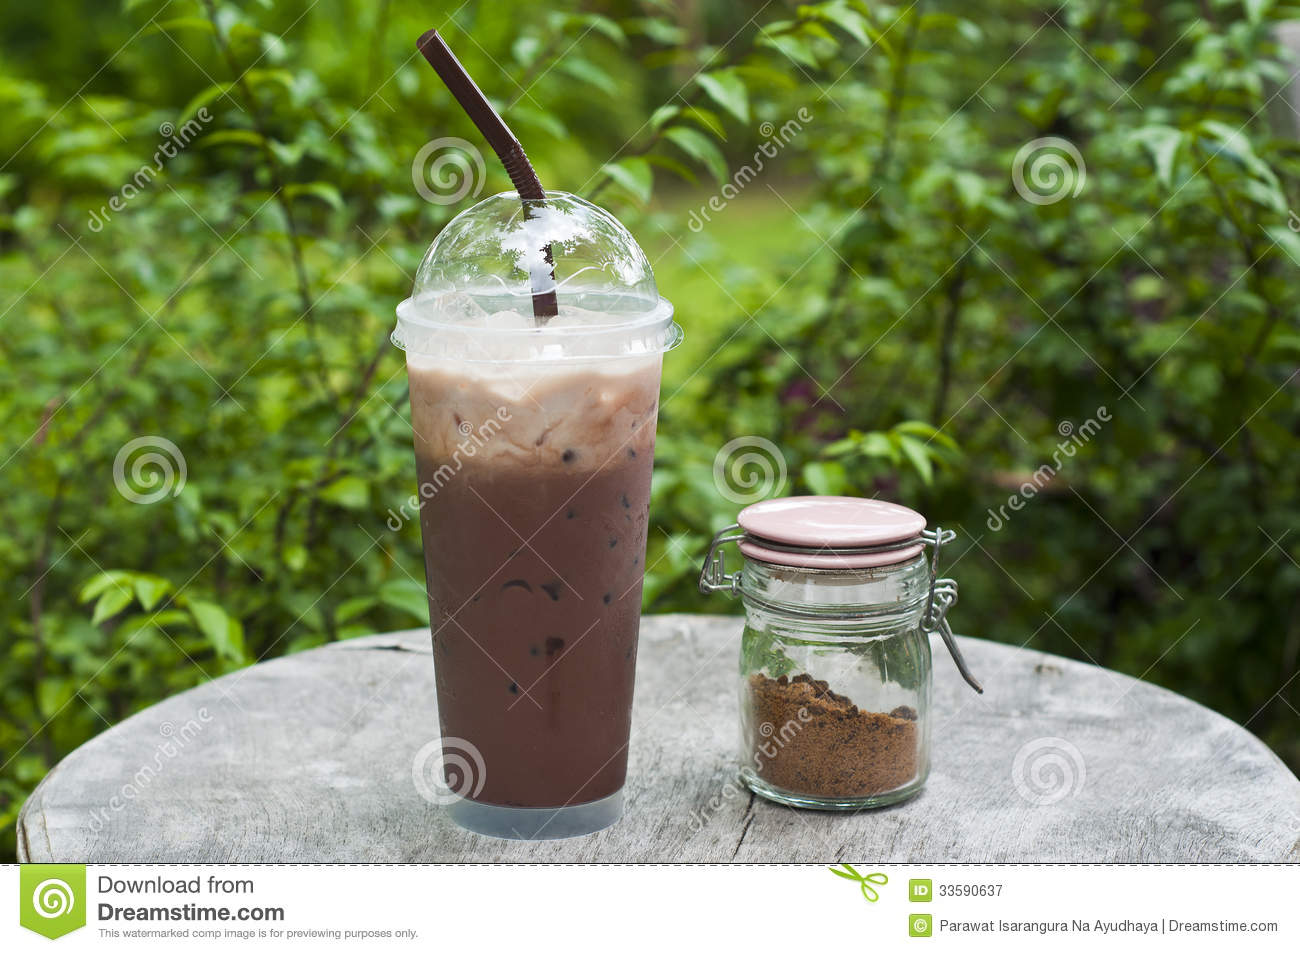 Iced Chocolate. Royalty Free Stock Photography - Image: 33590637